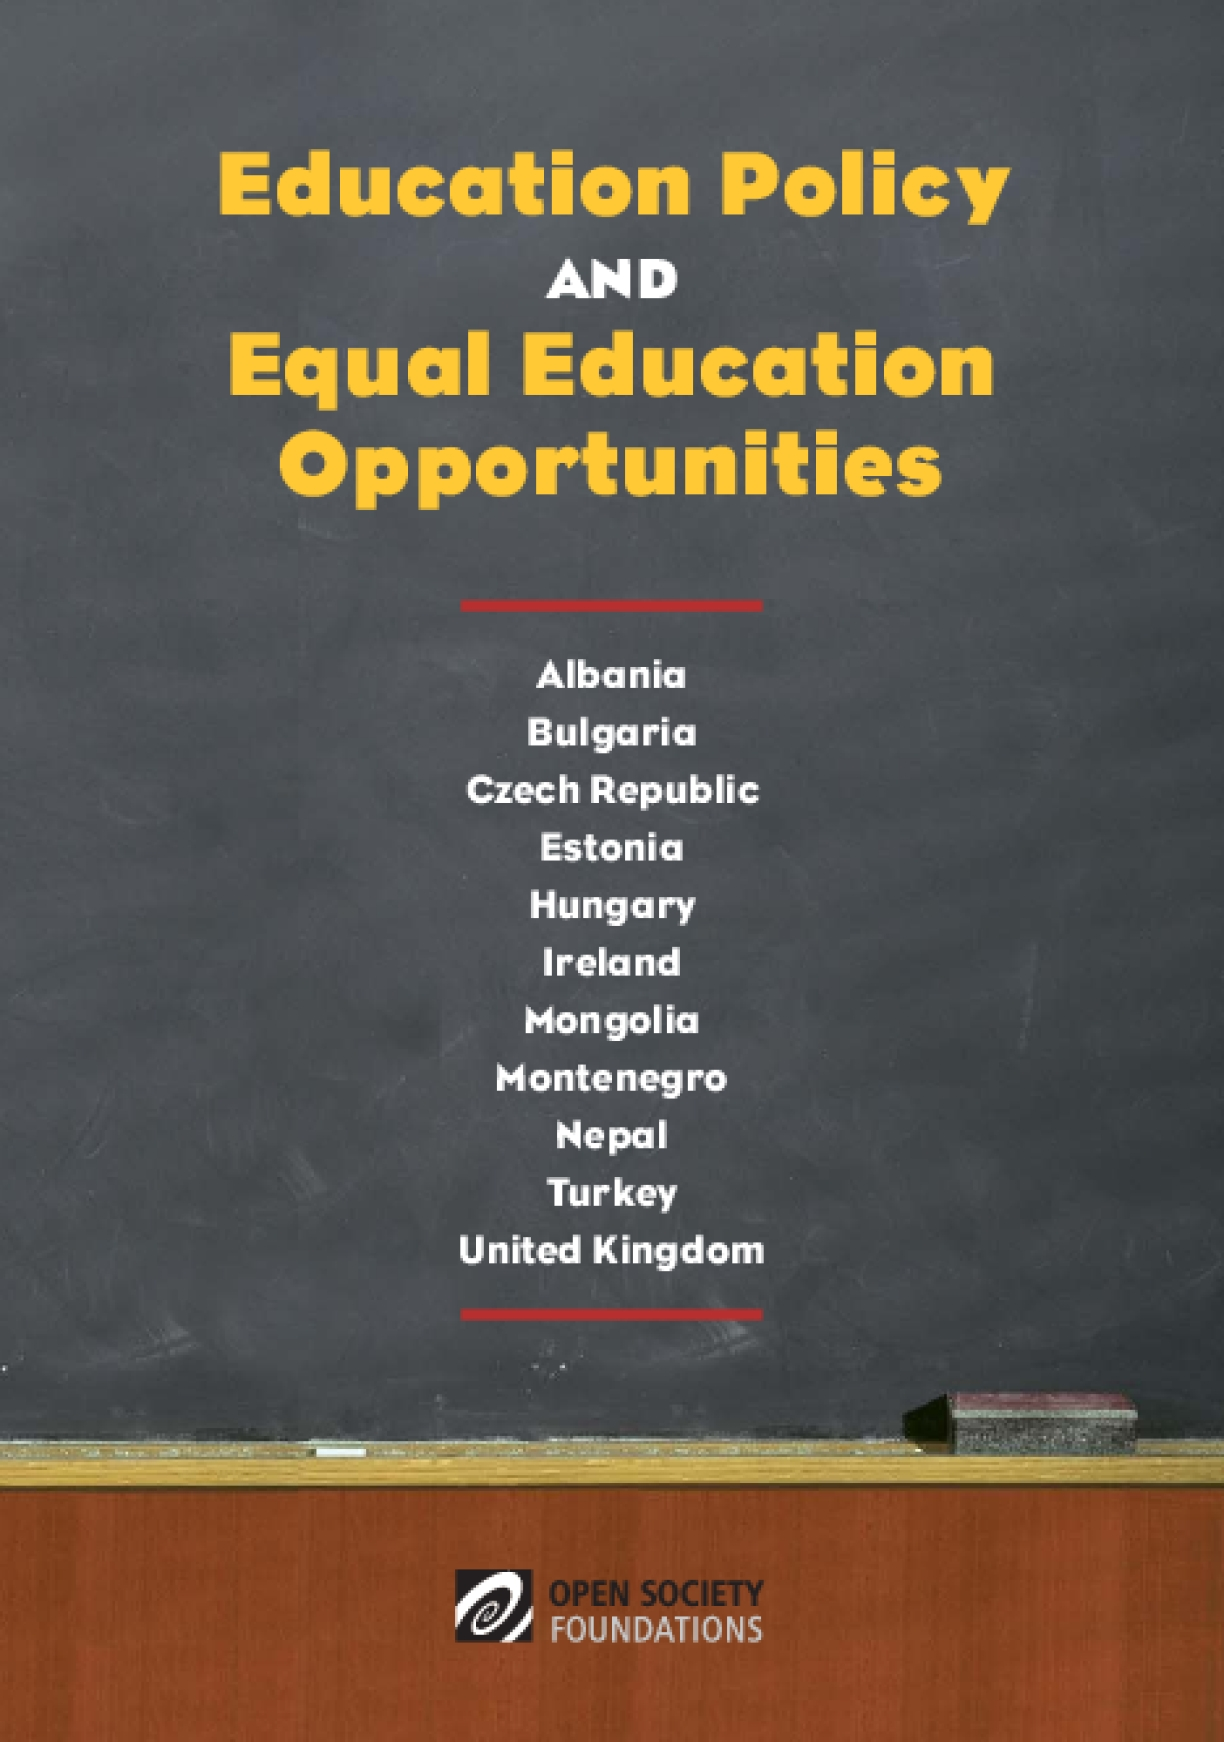 Education Policy and Equal Education Opportunities